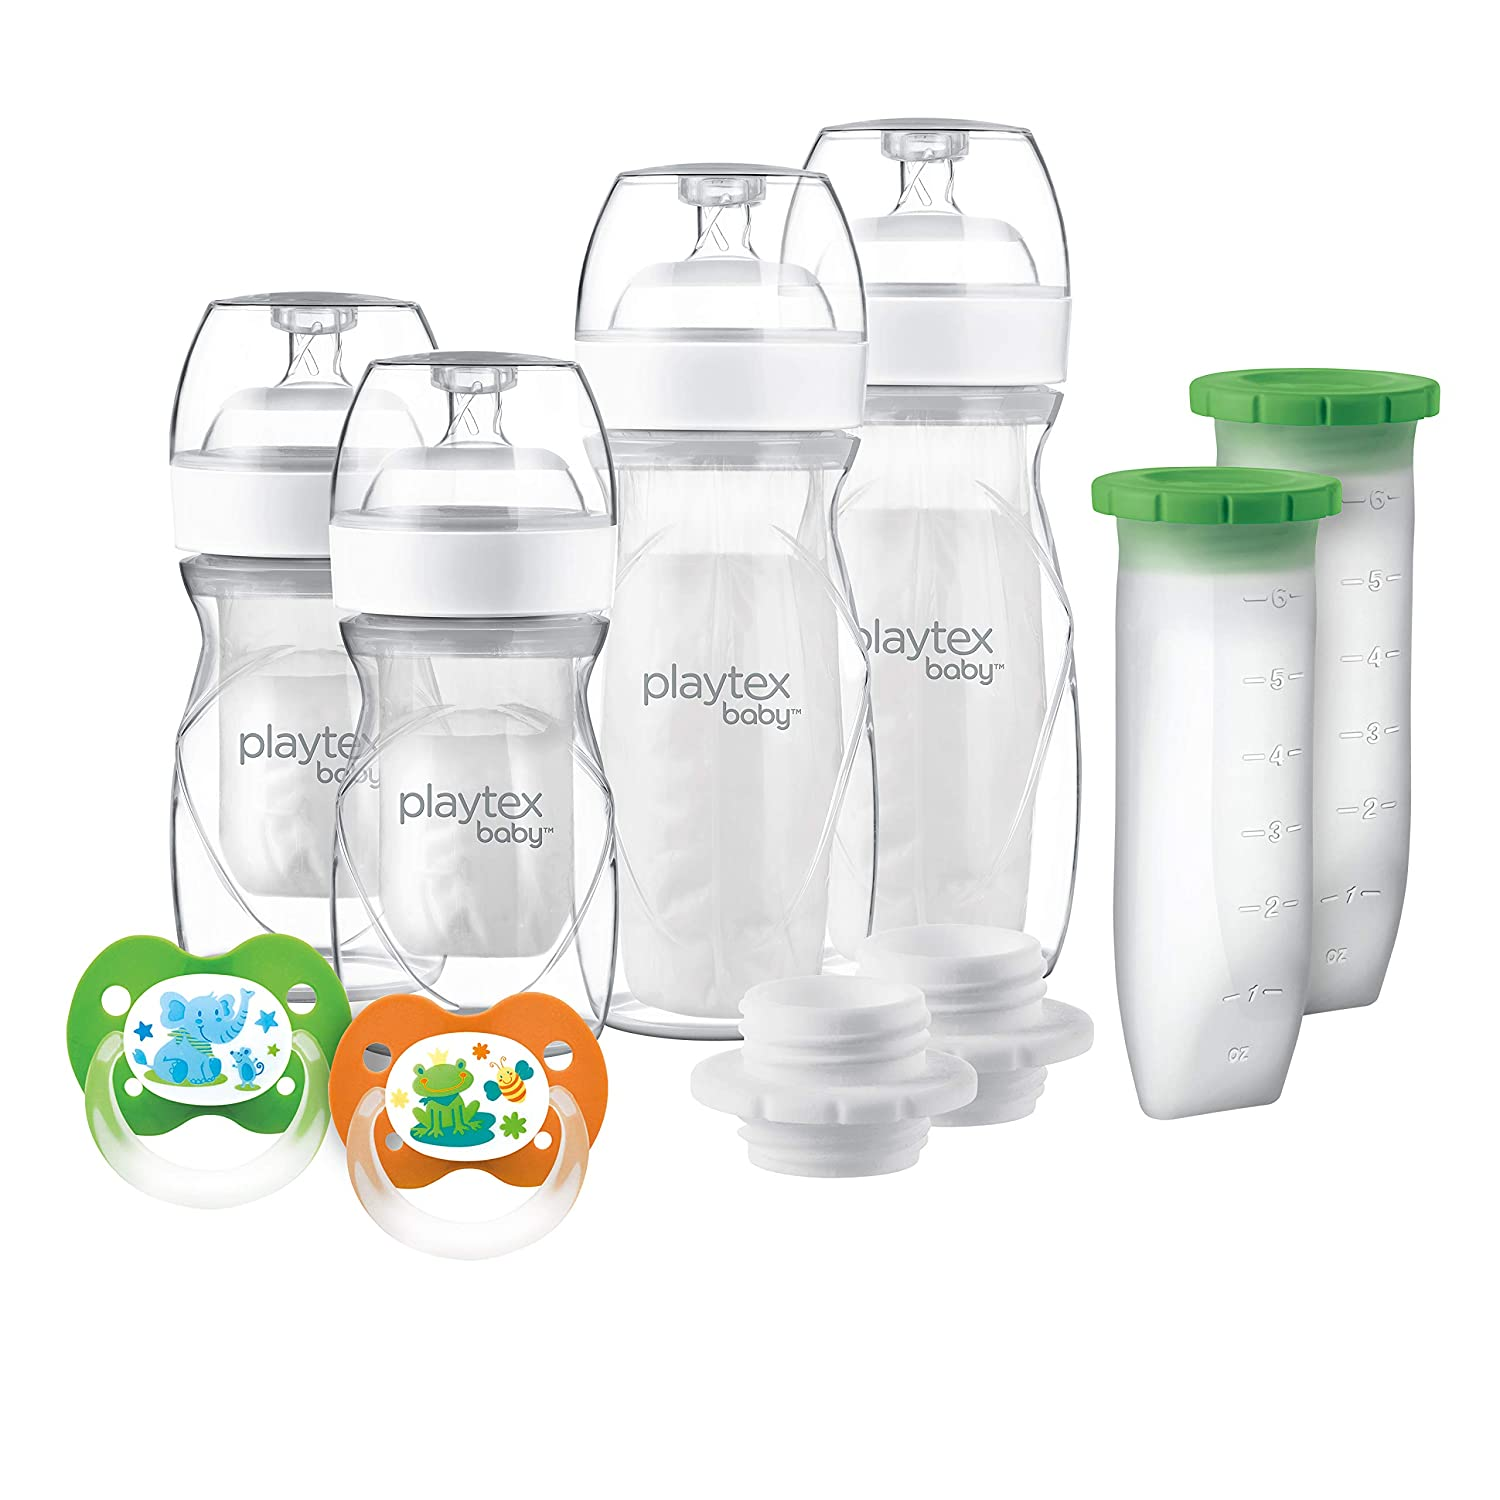 Playtex Baby Nurser Bottle Gift Set, wit…